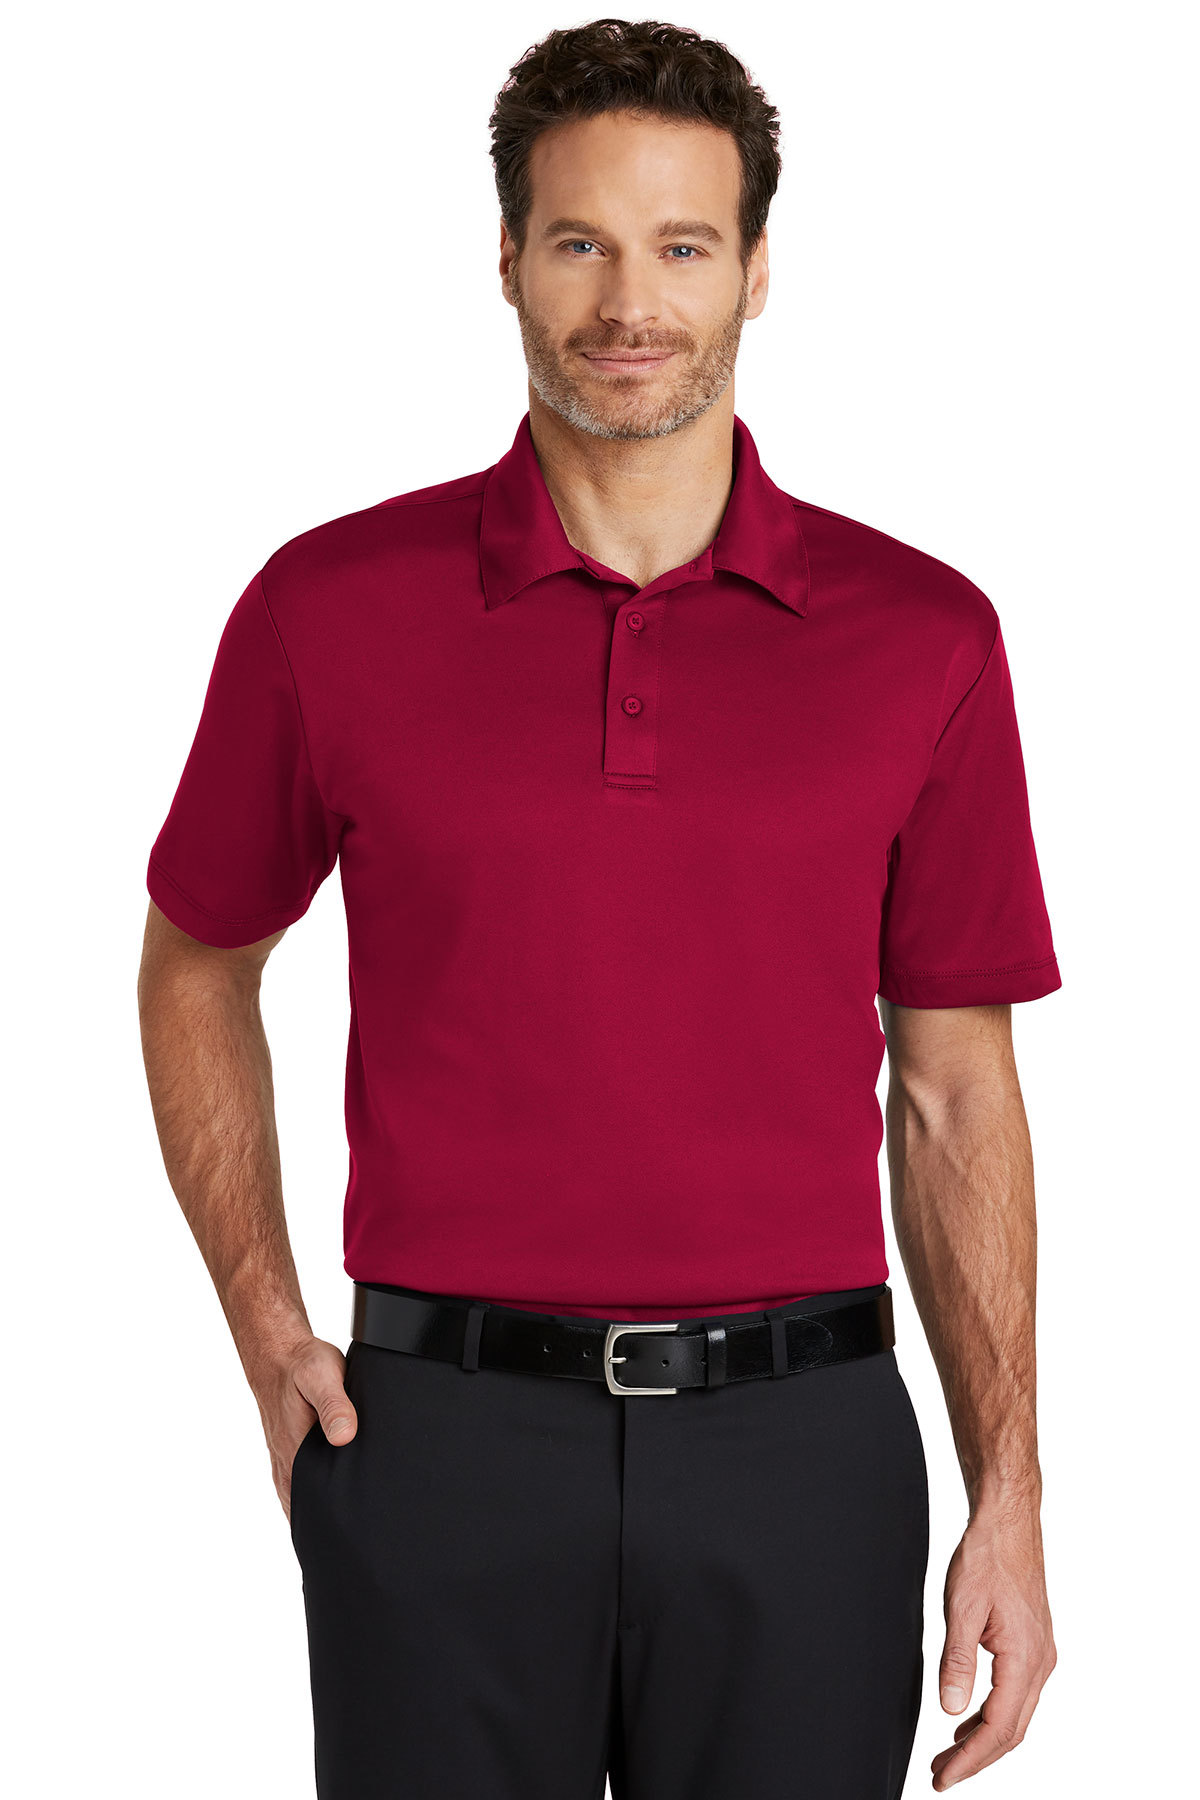 TLK540 Port Authority Tall Performance Polo